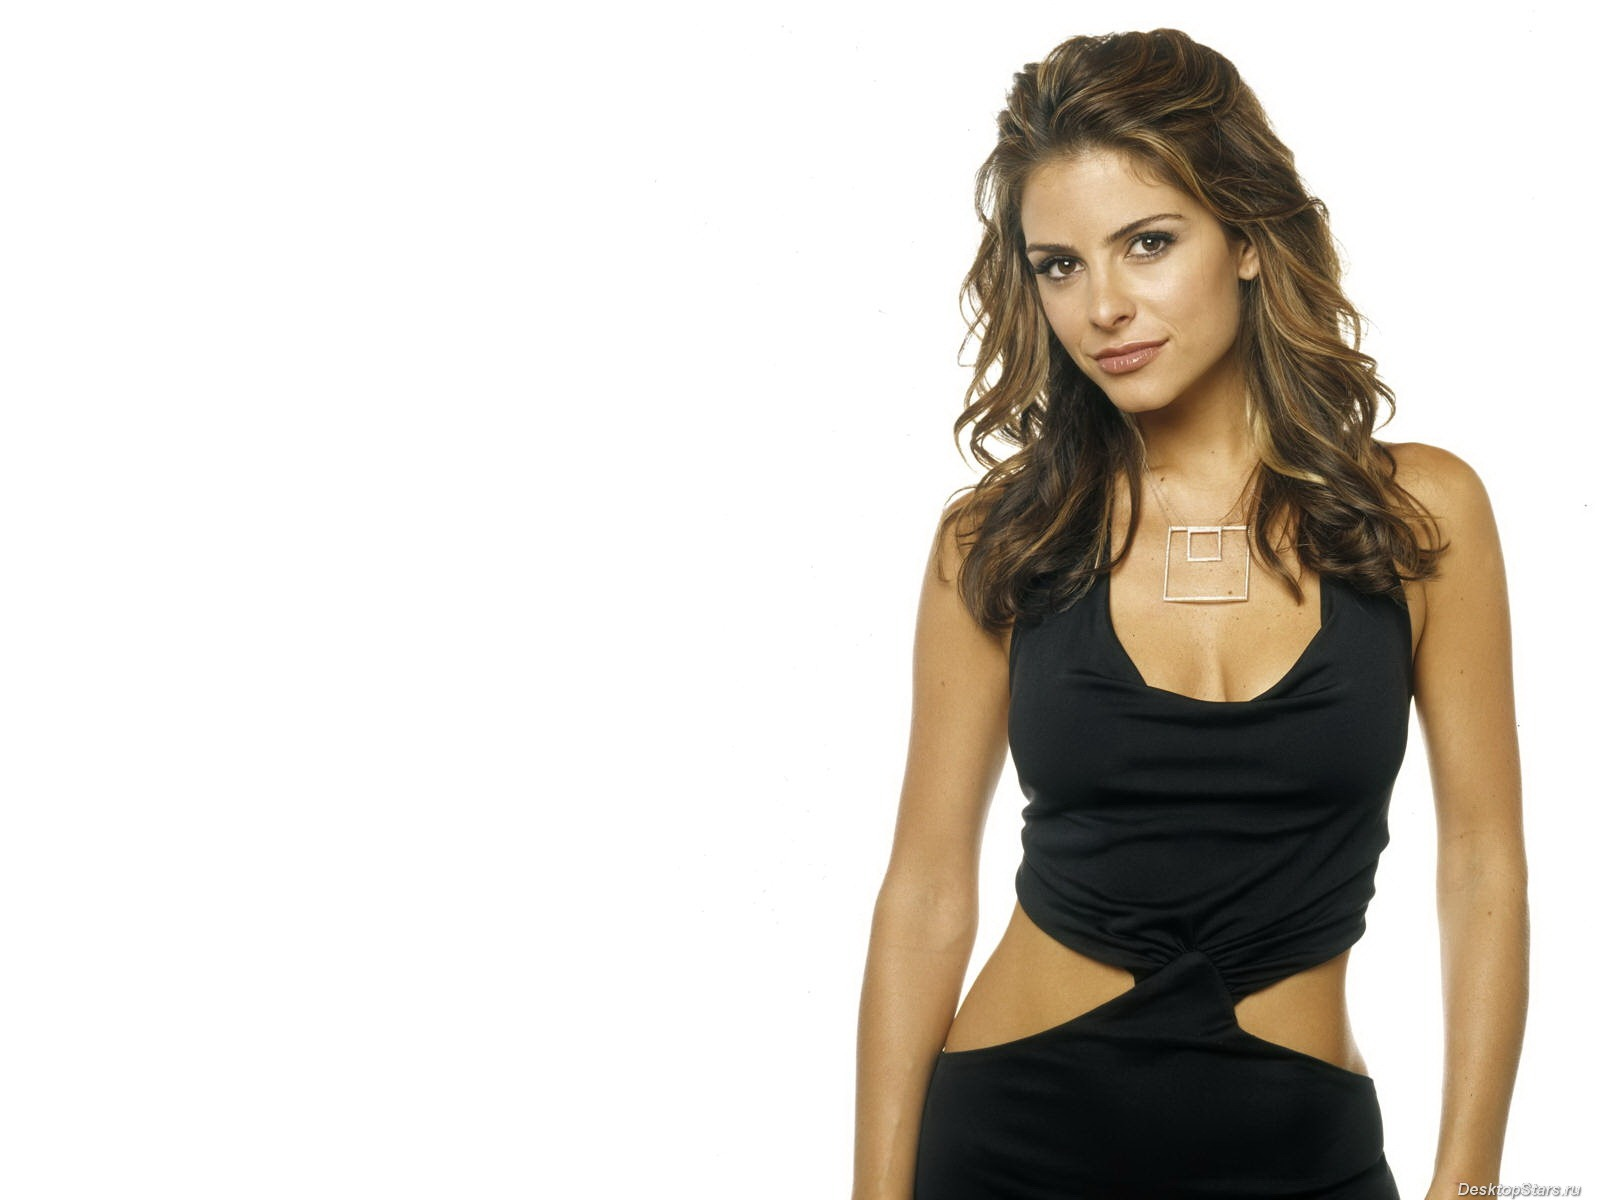 Maria Menounos #016 - 1600x1200 Wallpapers Pictures Photos Images